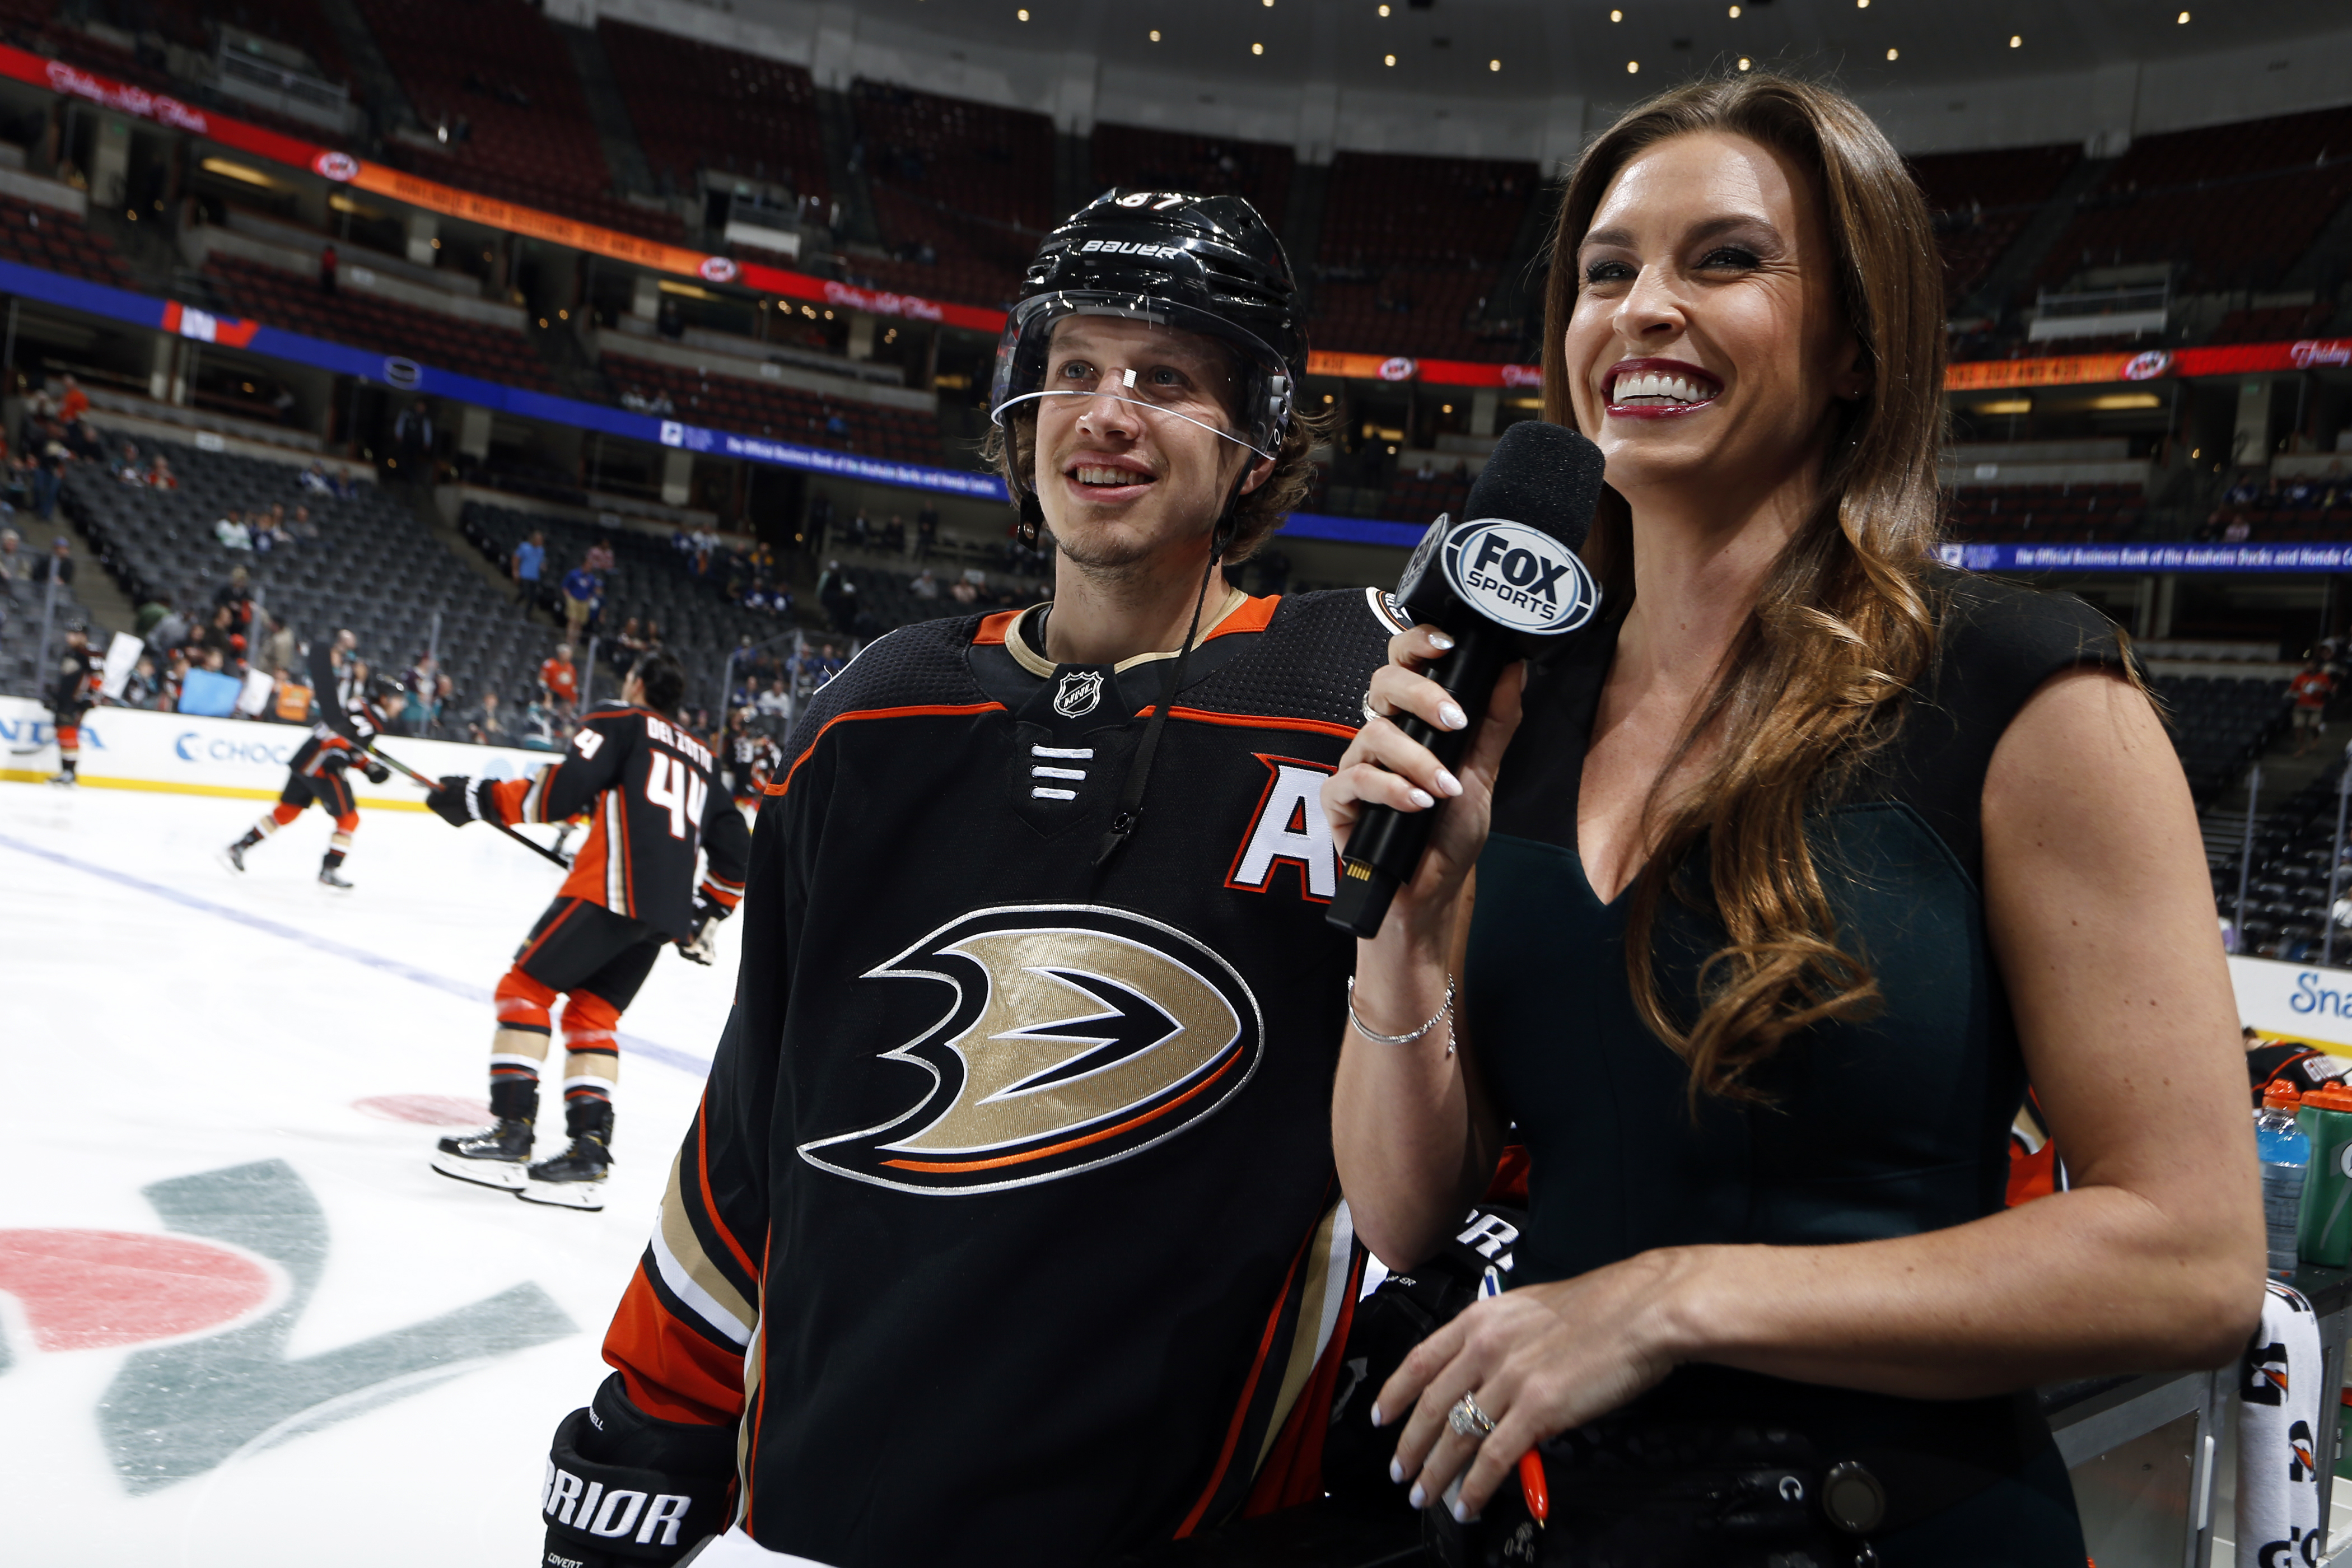 ANAHEIM, CA - MARCH 6: Rickard Rakell #67 of the Anaheim Ducks talks in a pre-game interview with Alyson Lozoff during warm-ups of the game against the Toronto Maple Leafs at Honda Center on March 6, 2020 in Anaheim, California.